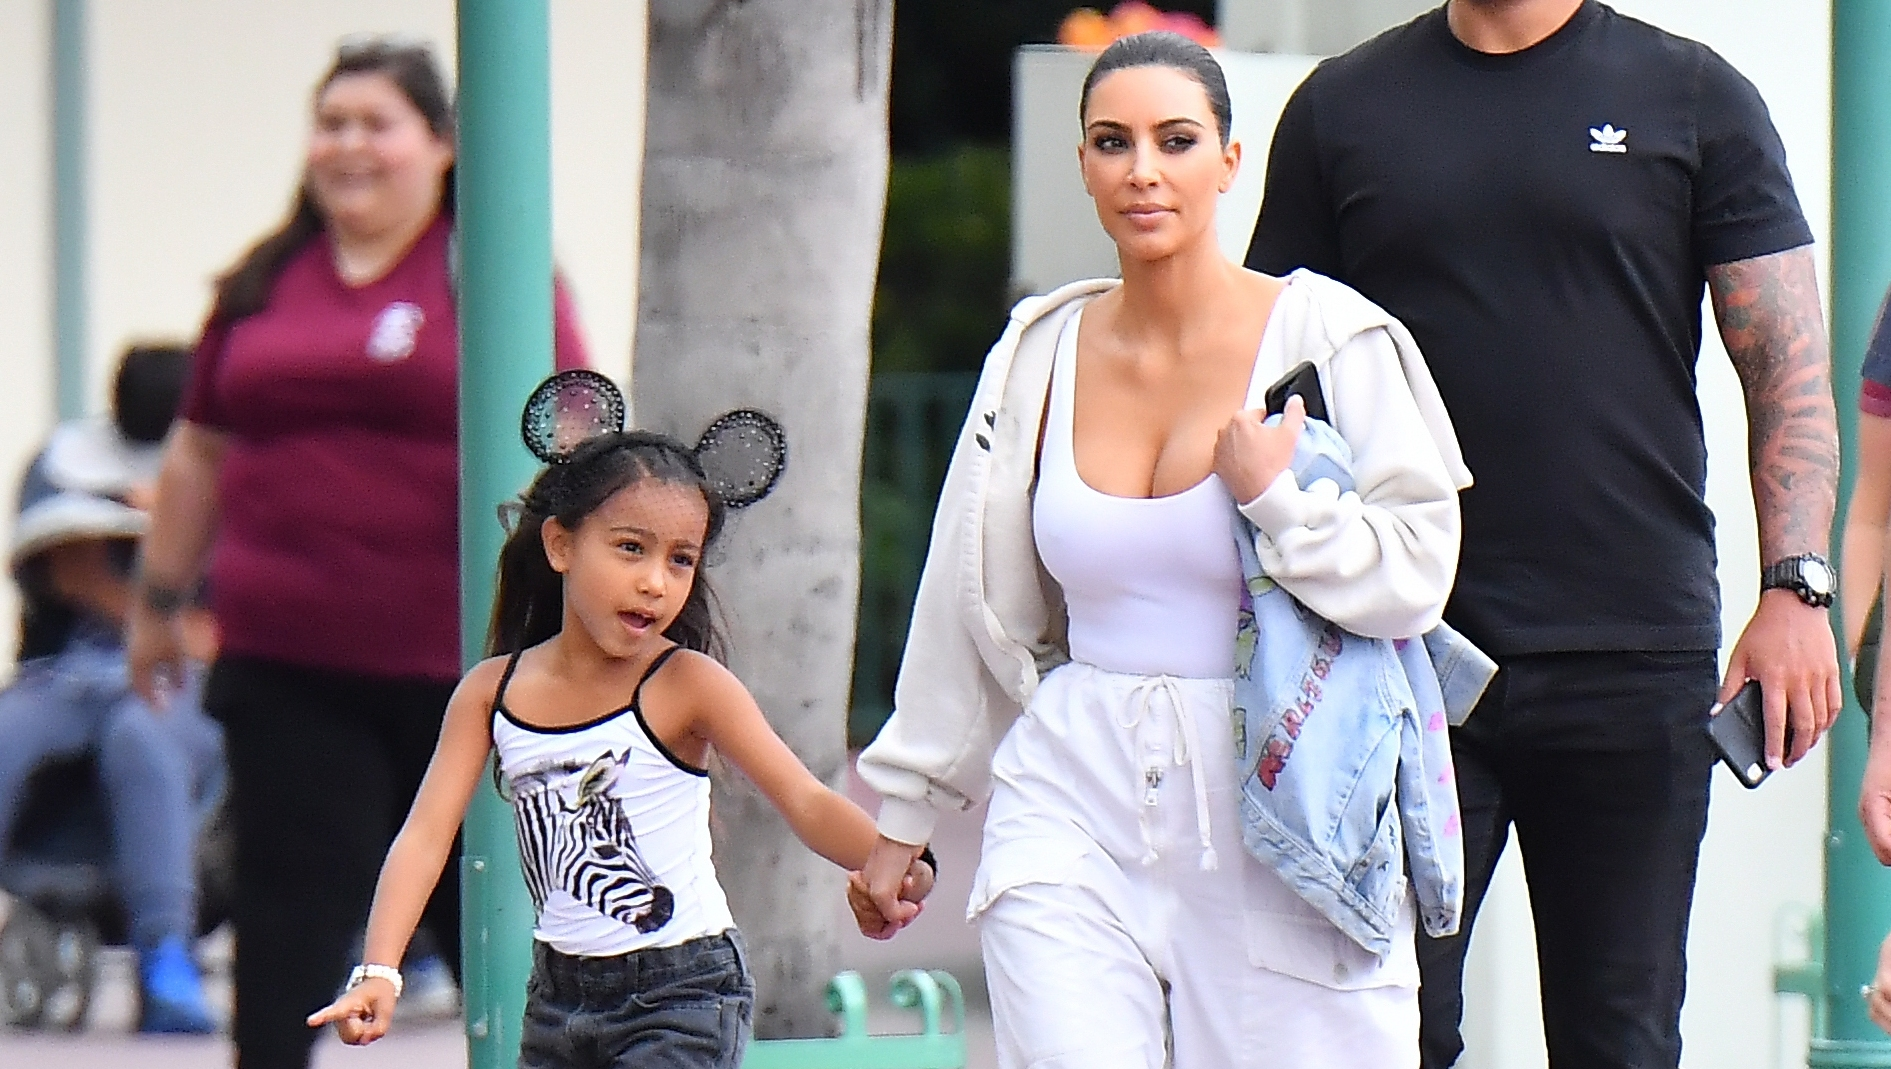 North West, Kim Kardashian